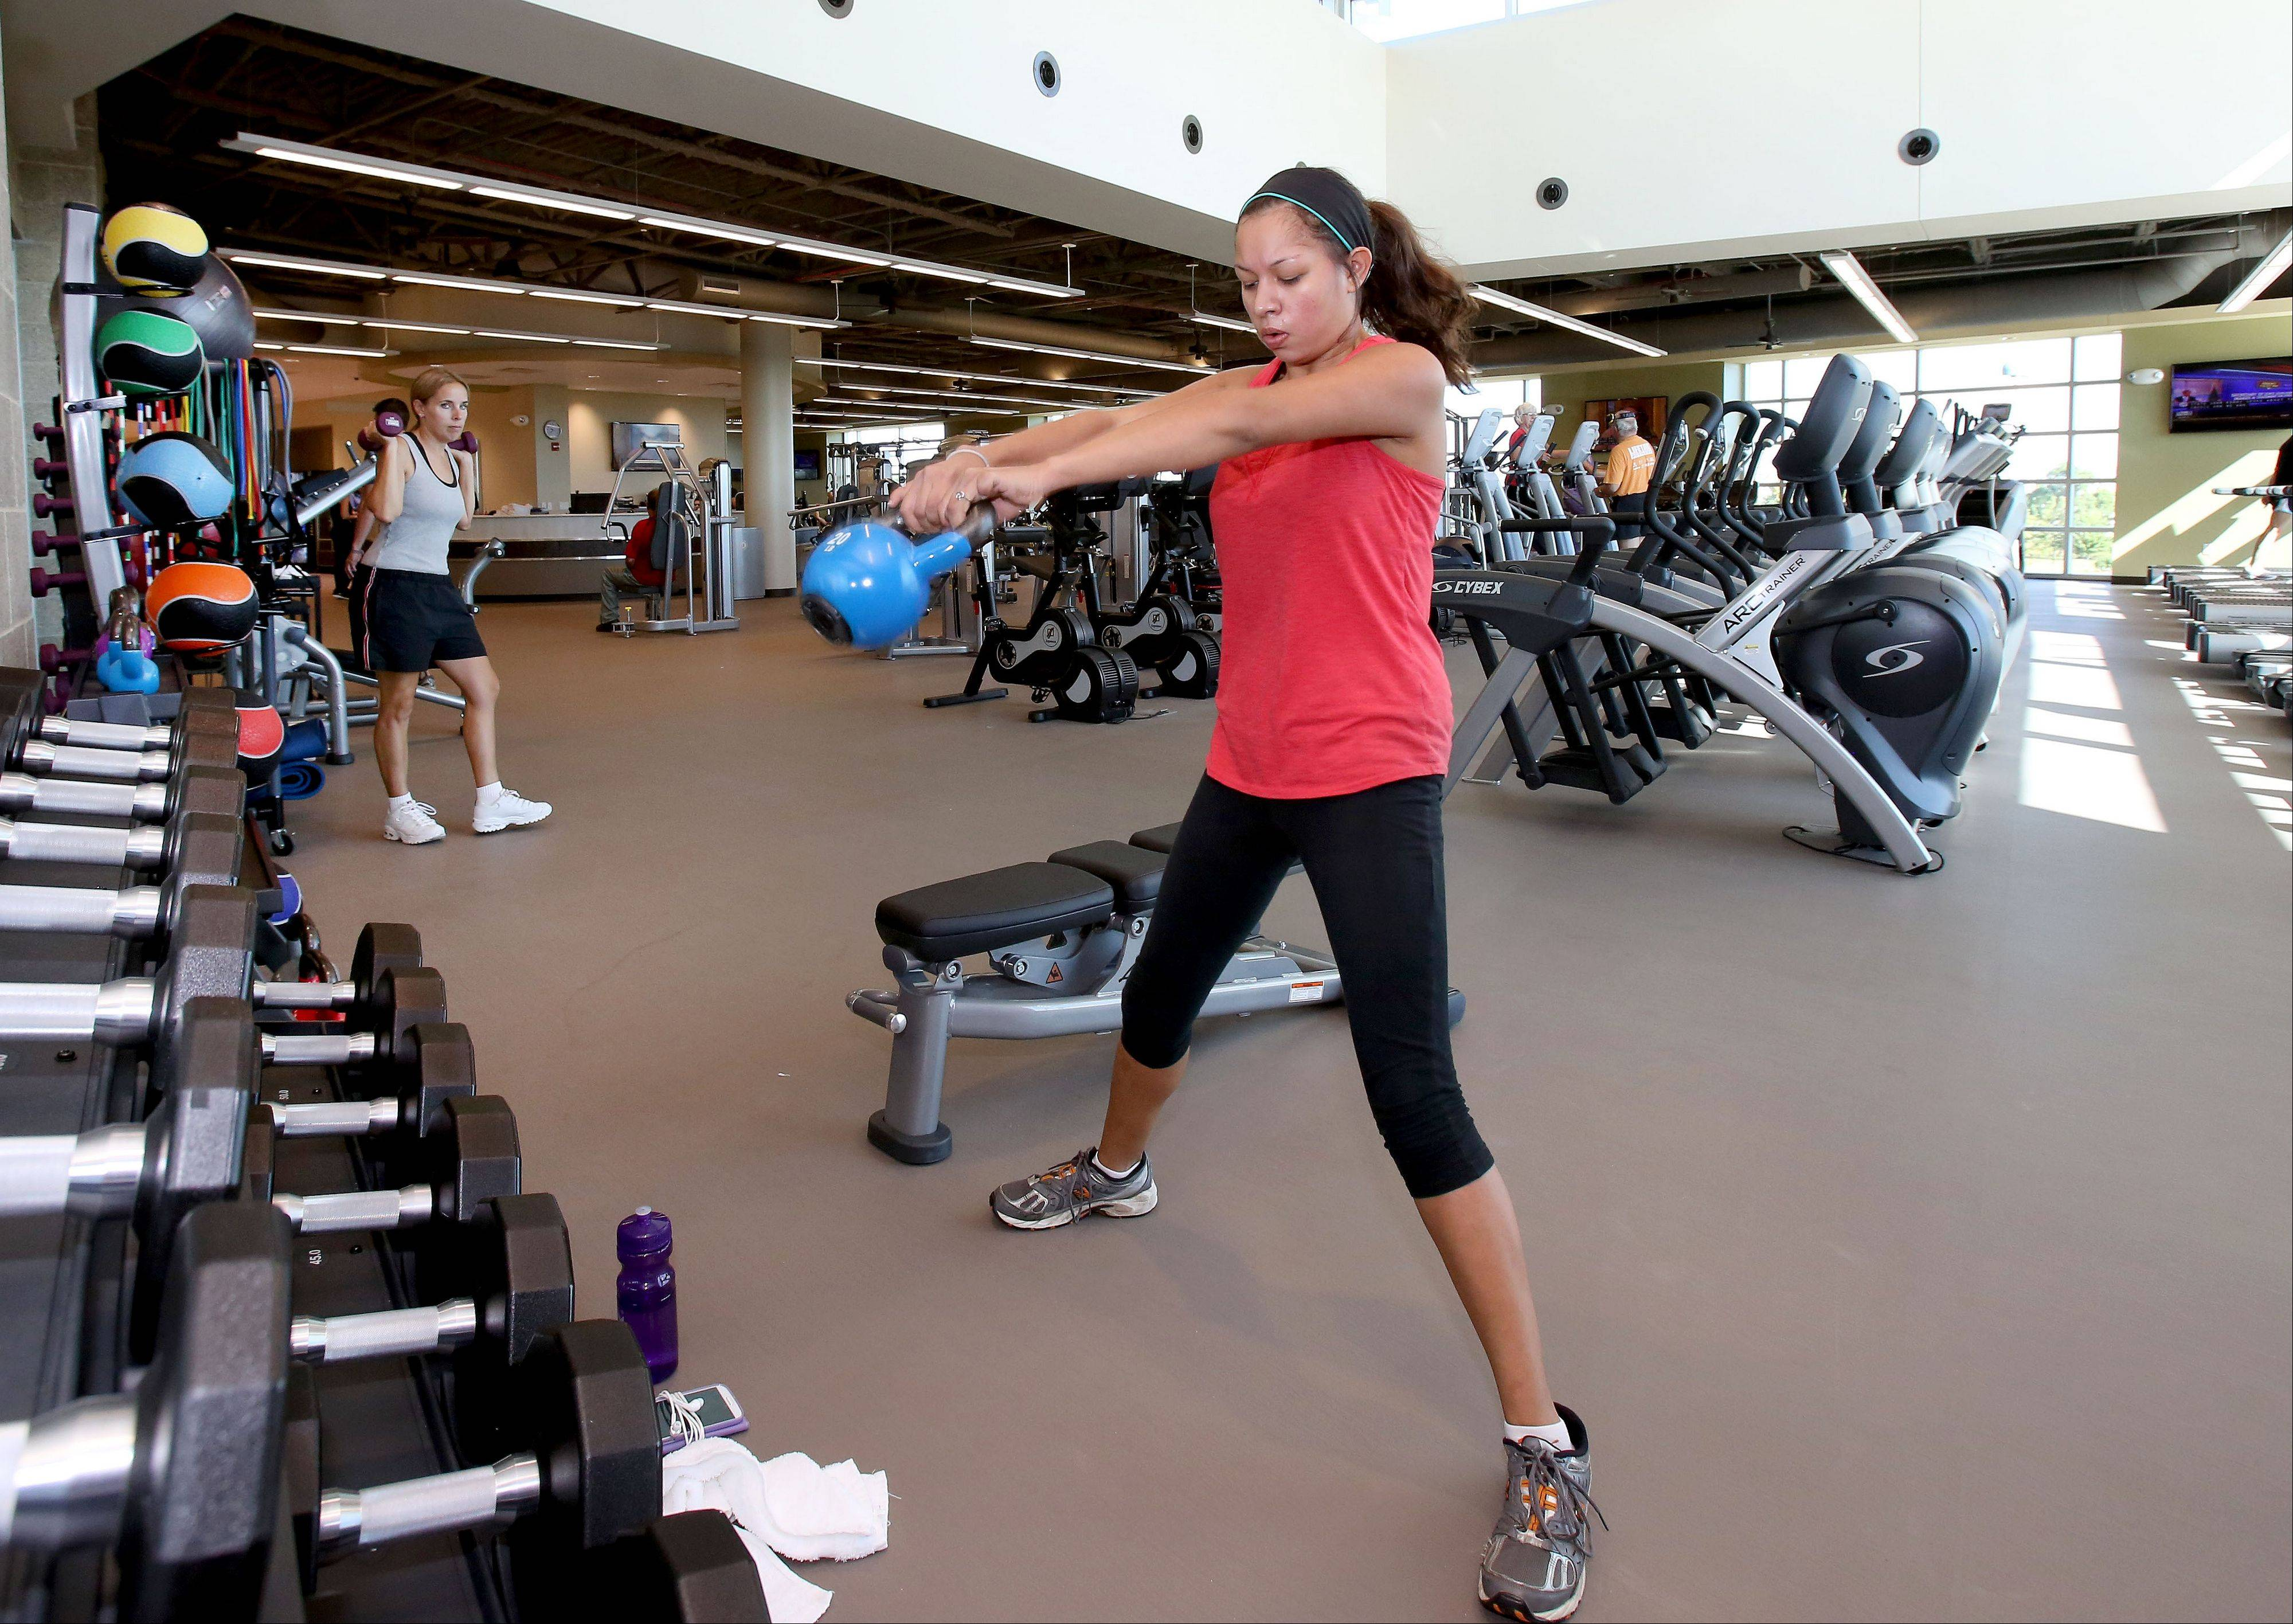 Amanda Reyes of Carol Stream works out at the new Fountain View Recreation Center in Carol Stream. The grand opening is Saturday.